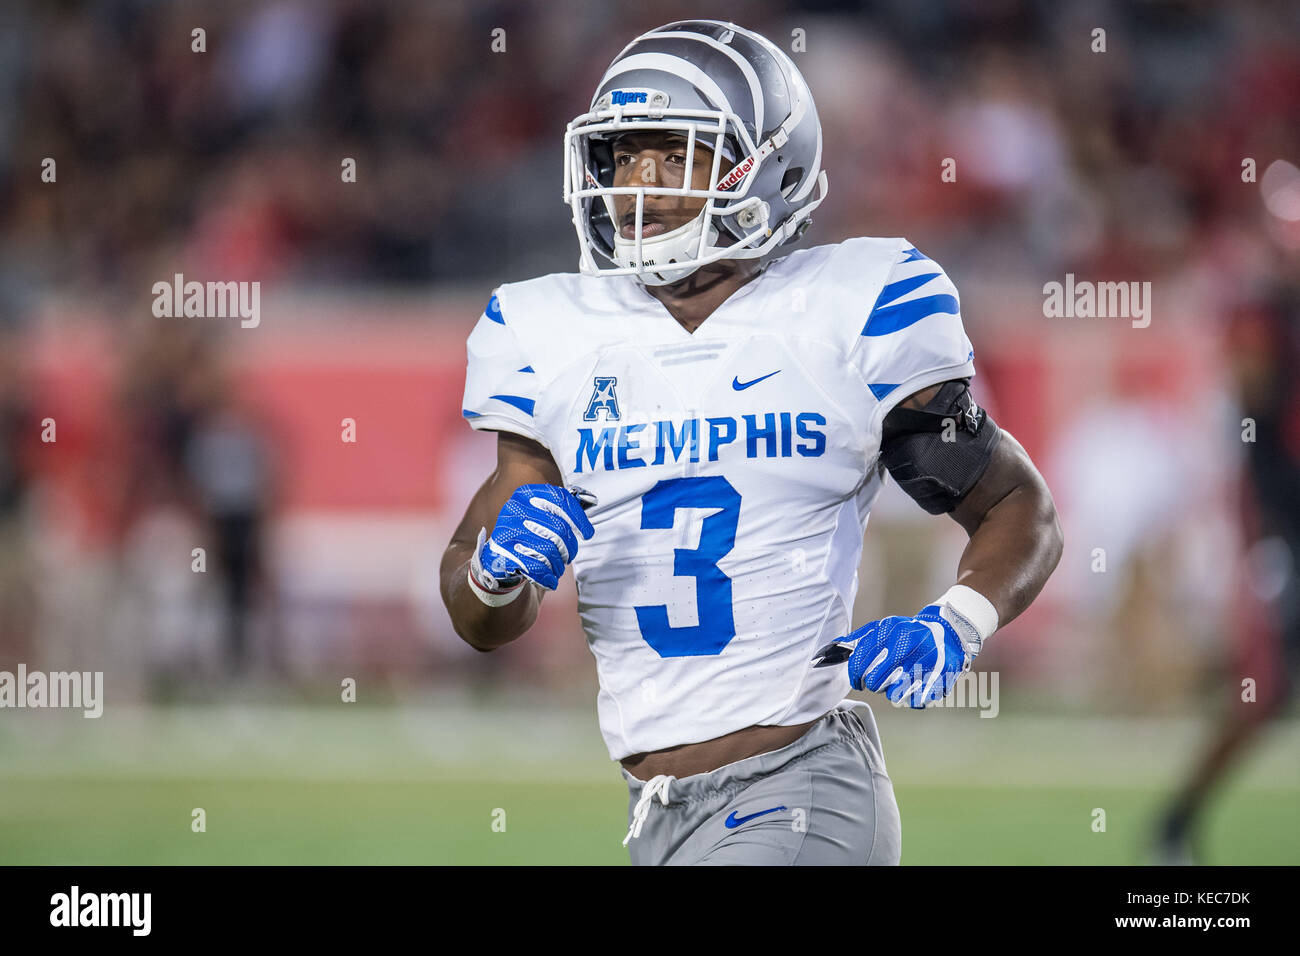 buy online 1fb82 663f5 Houston, TX, USA. 19th Oct, 2017. Memphis Tigers wide ...